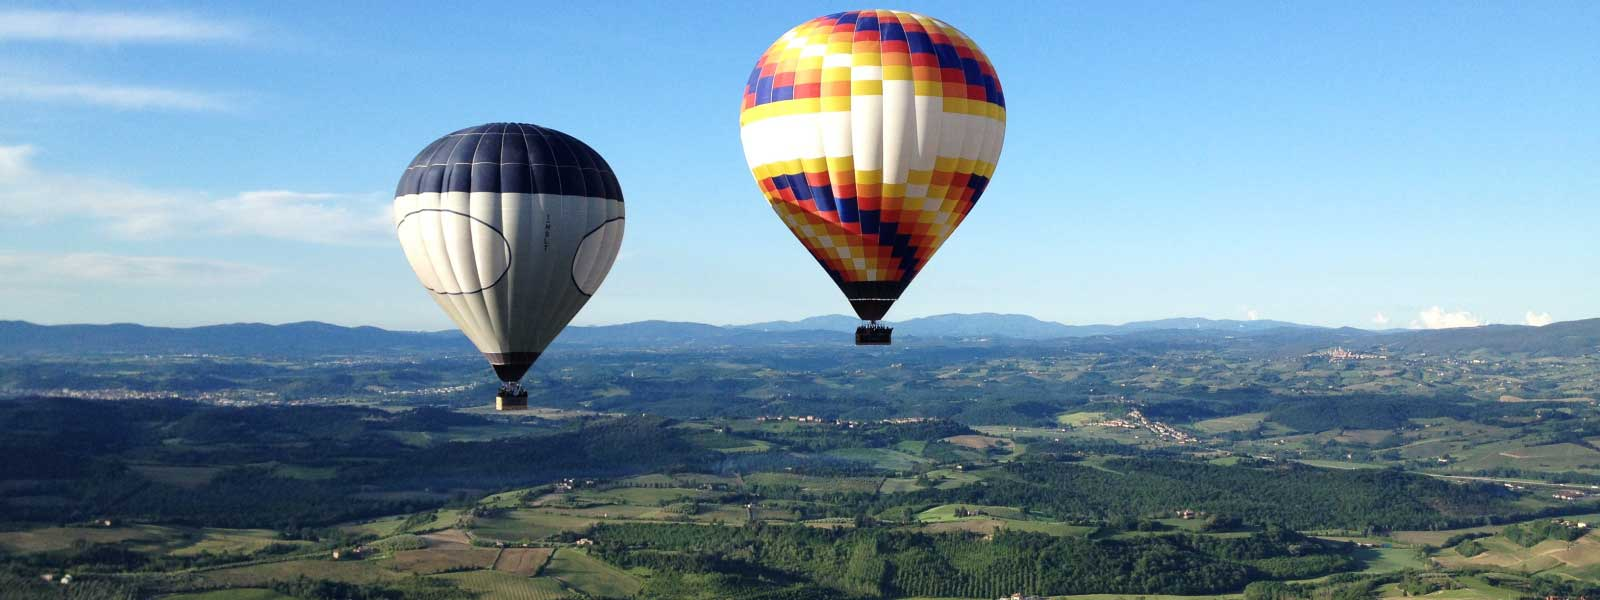 balloons-in-flight-towards-san-gimignano